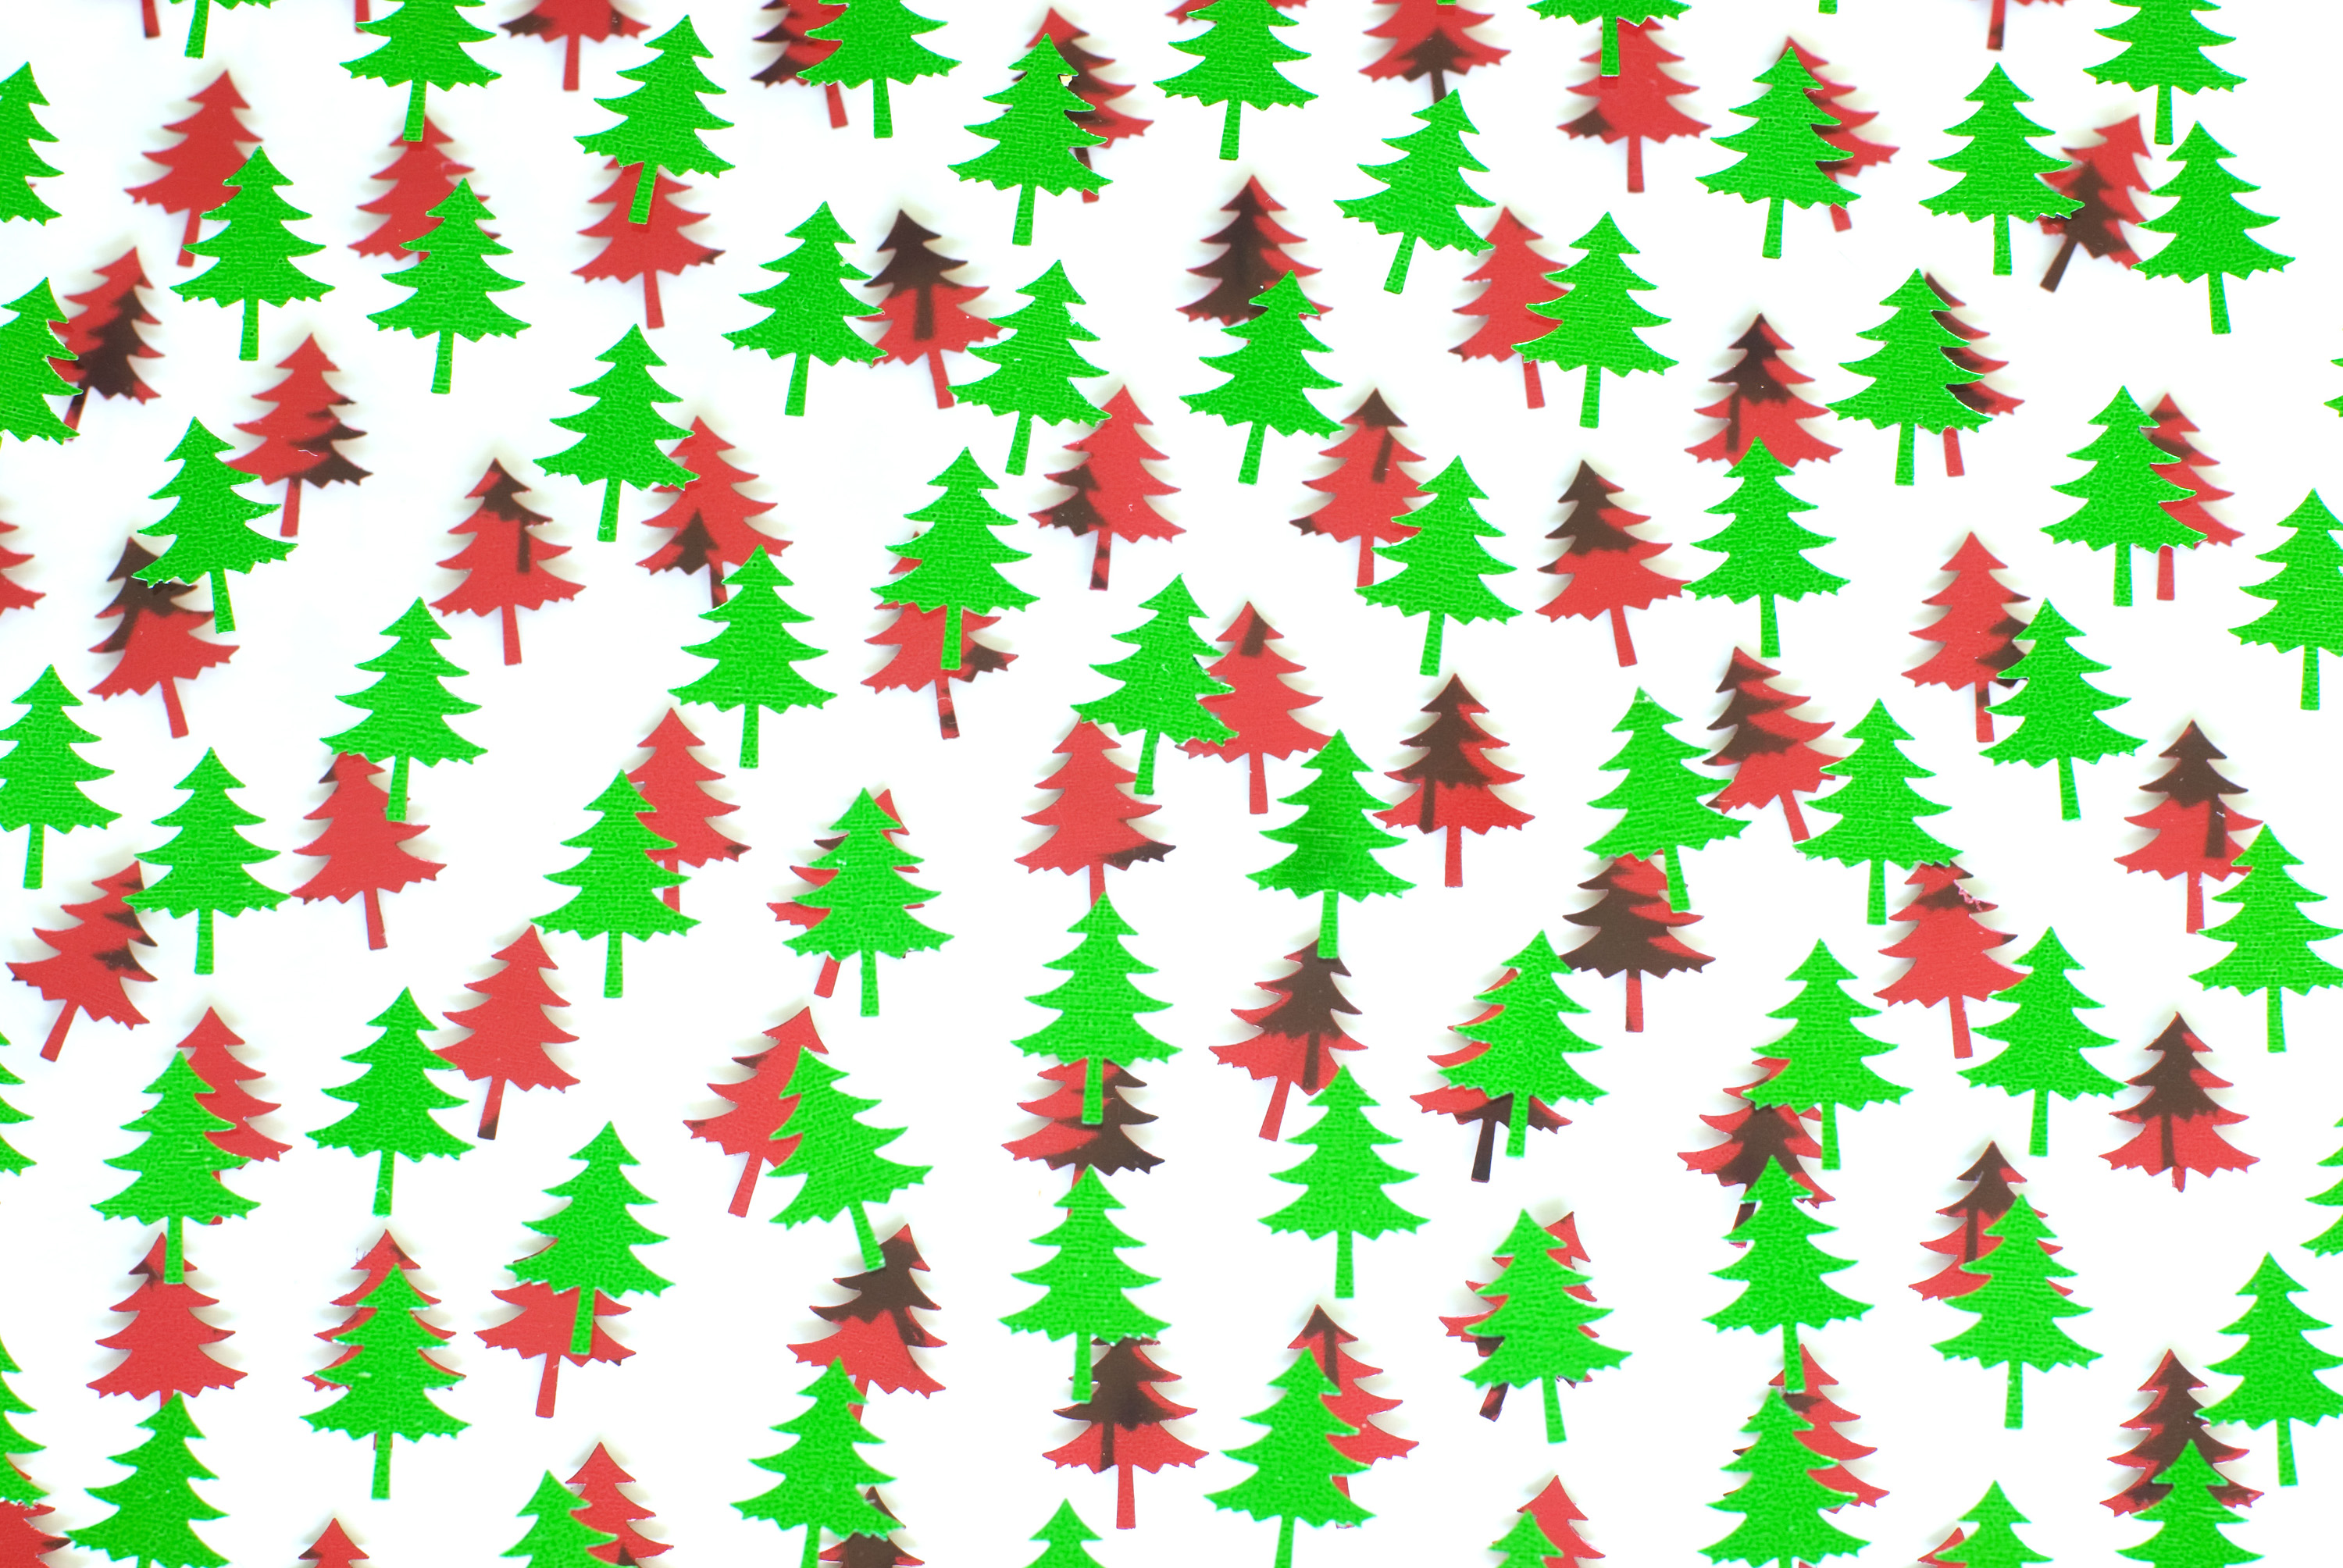 Free Stock Photo 3632-red and green tree shapes | freeimageslive